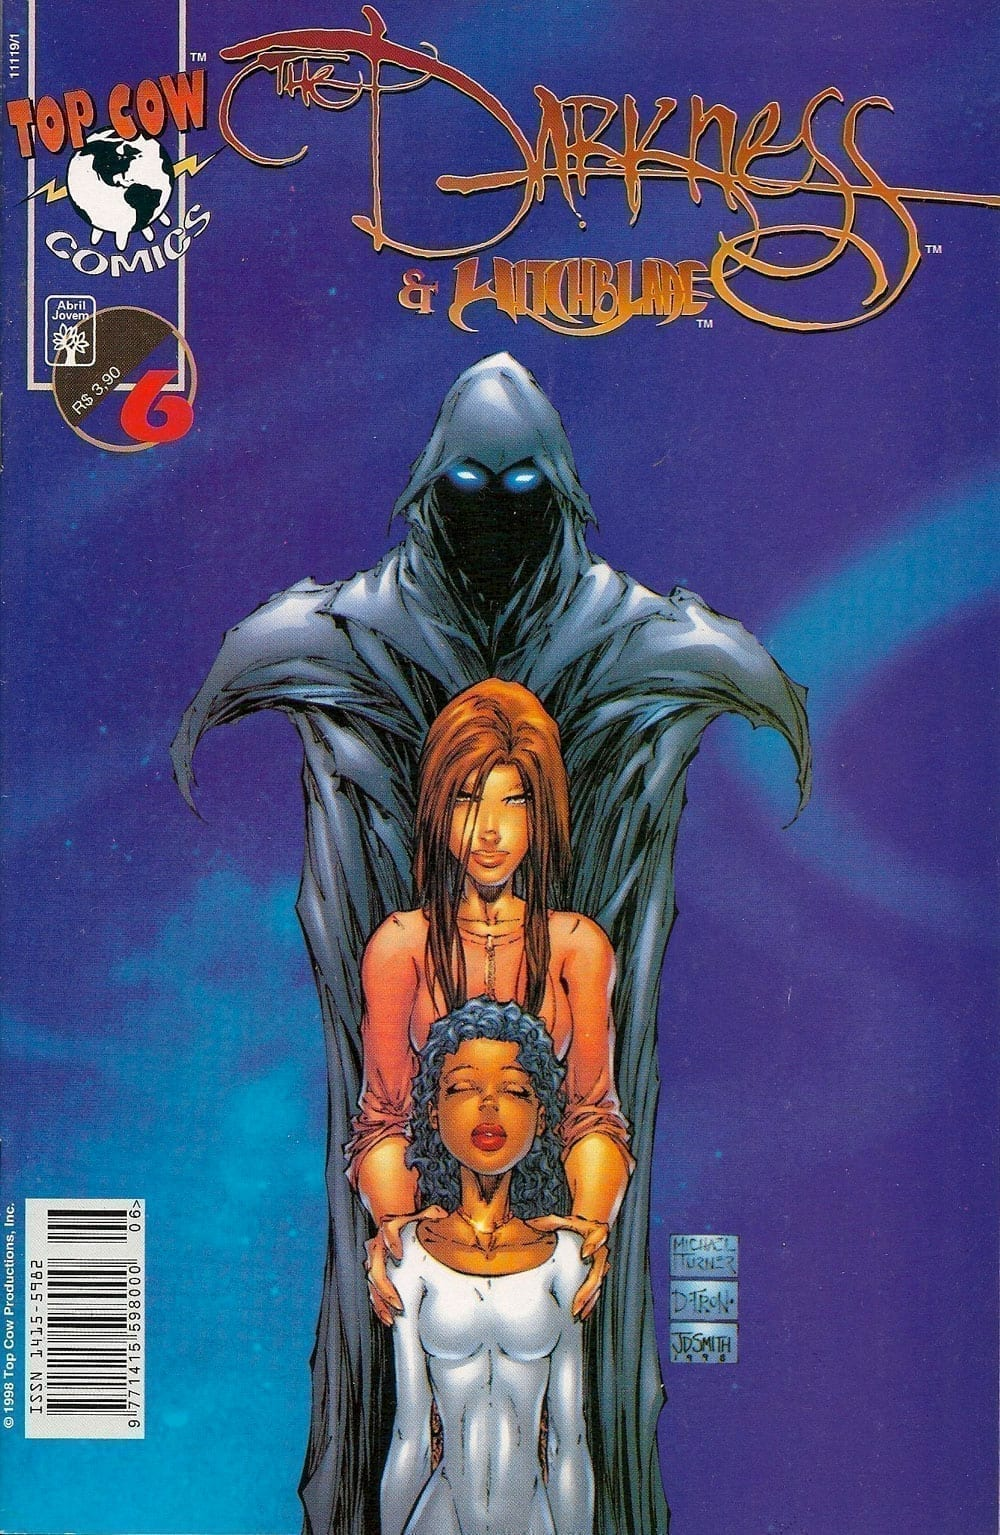 <span>The Darkness & Witchblade 6</span>